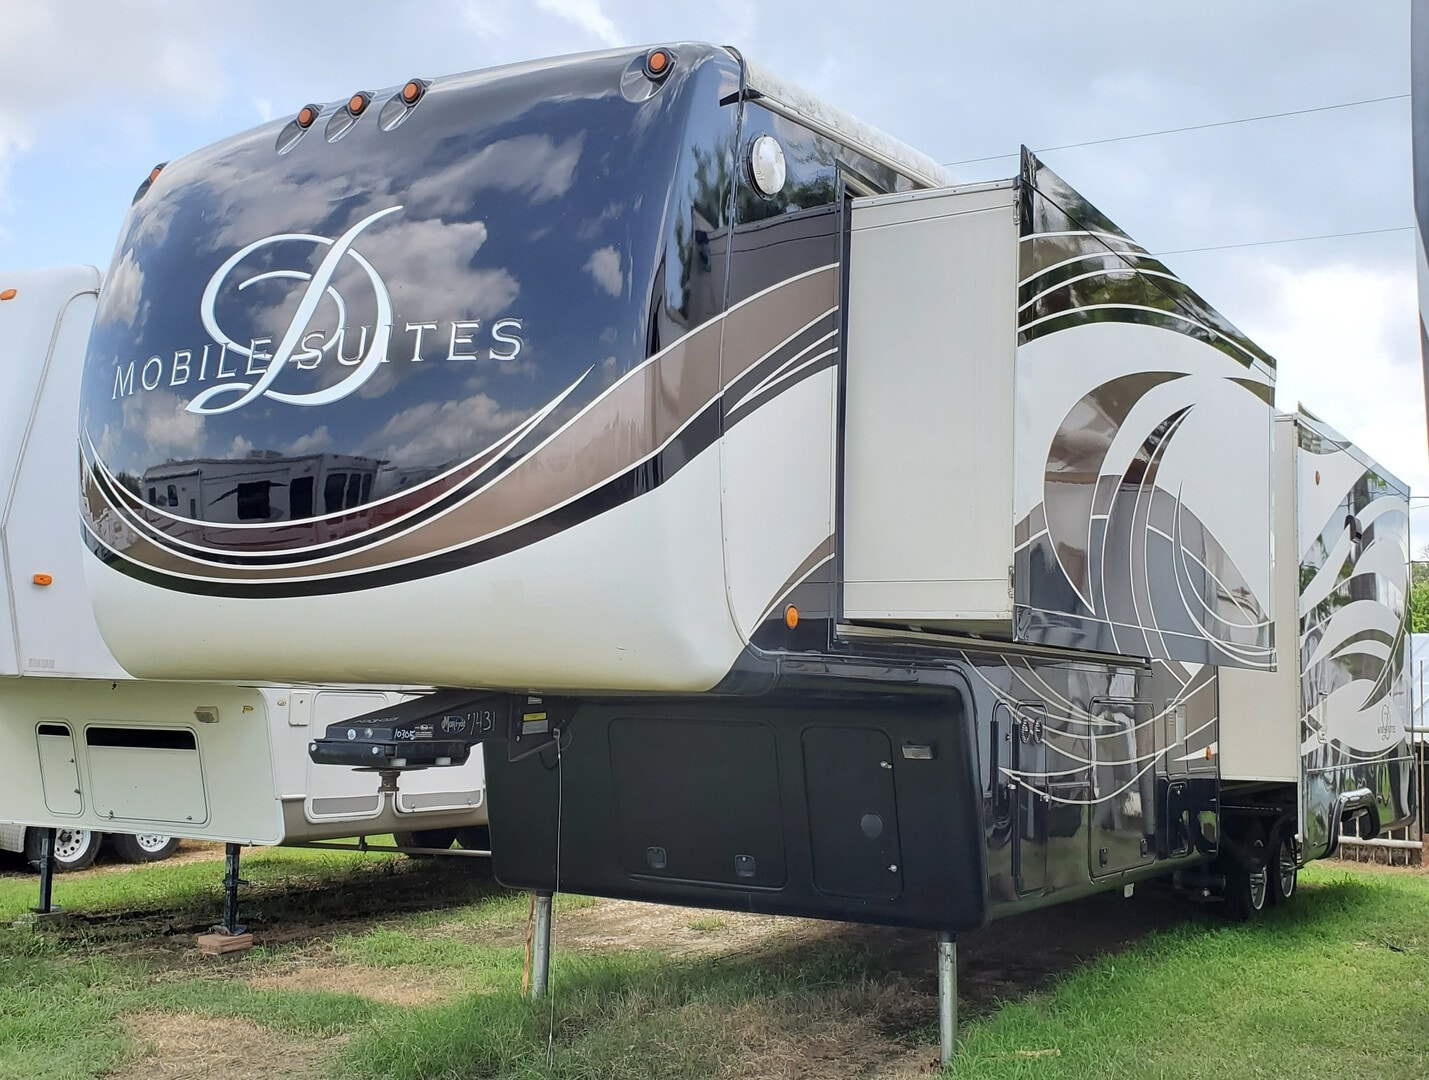 Used, 2015, DRV, Mobile Suites 38RSB3, Fifth Wheels